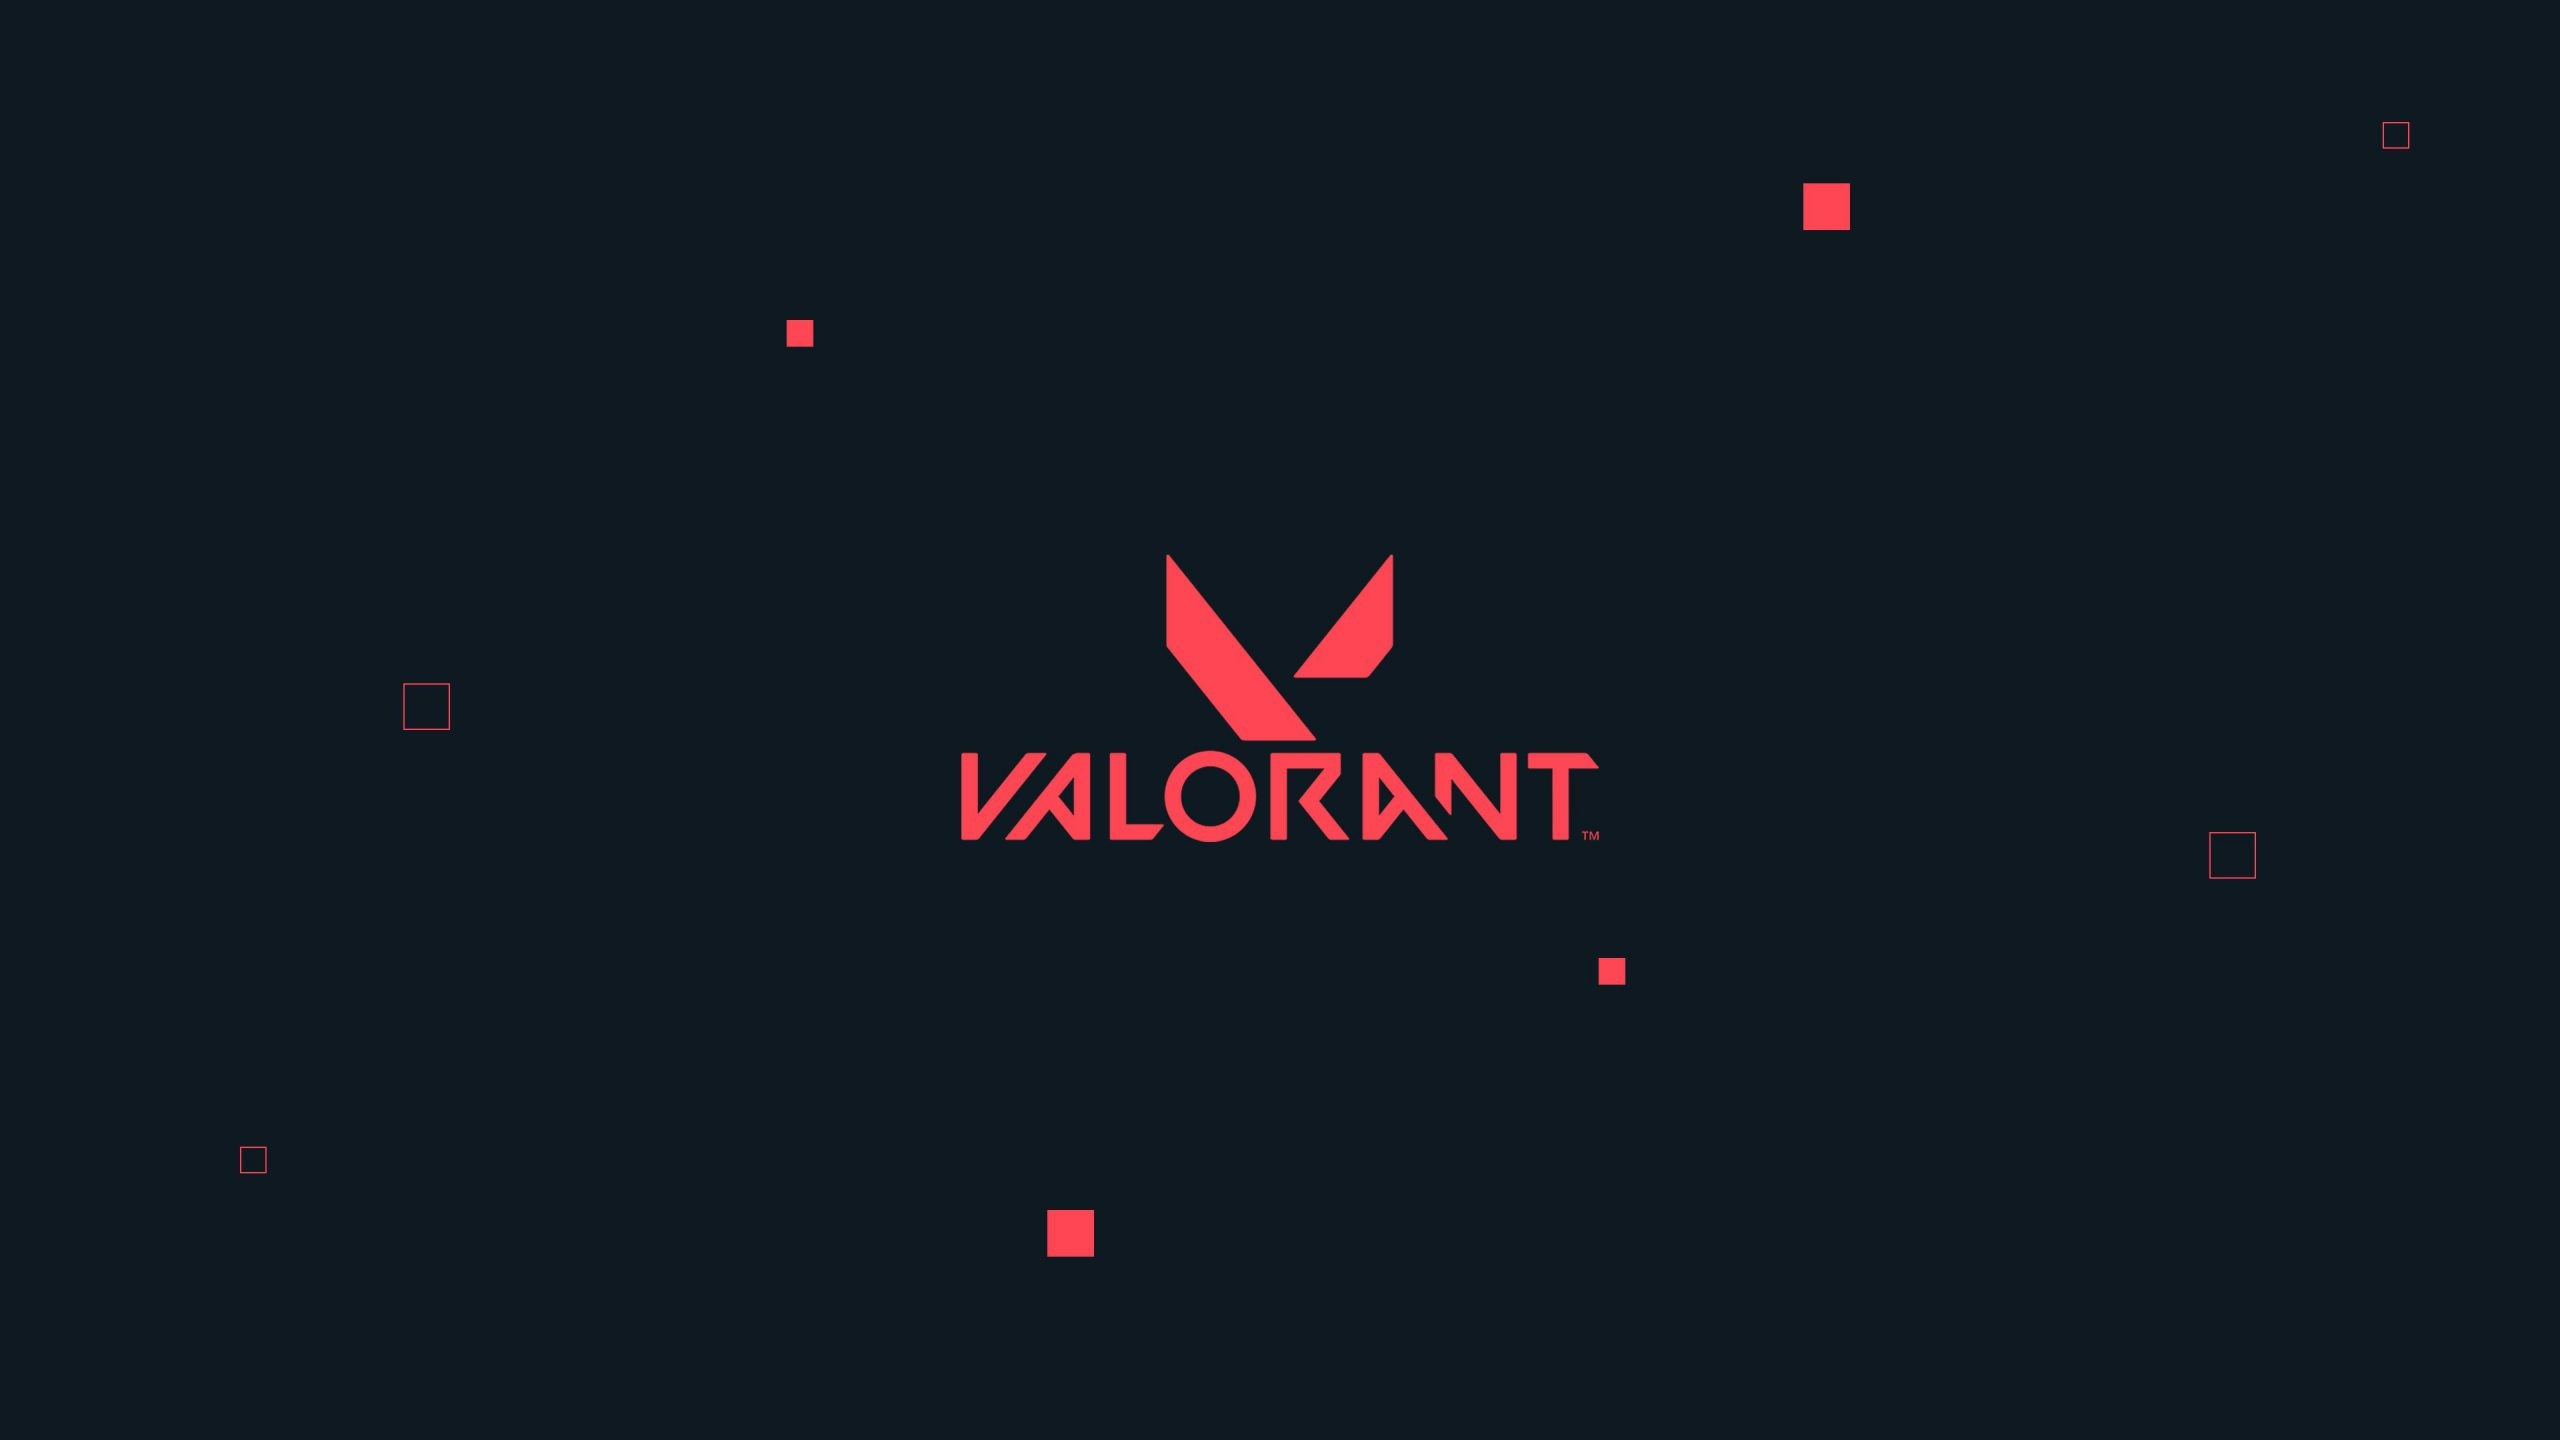 Valorant 4K Background   KoLPaPer   Awesome HD Wallpapers 2560x1440